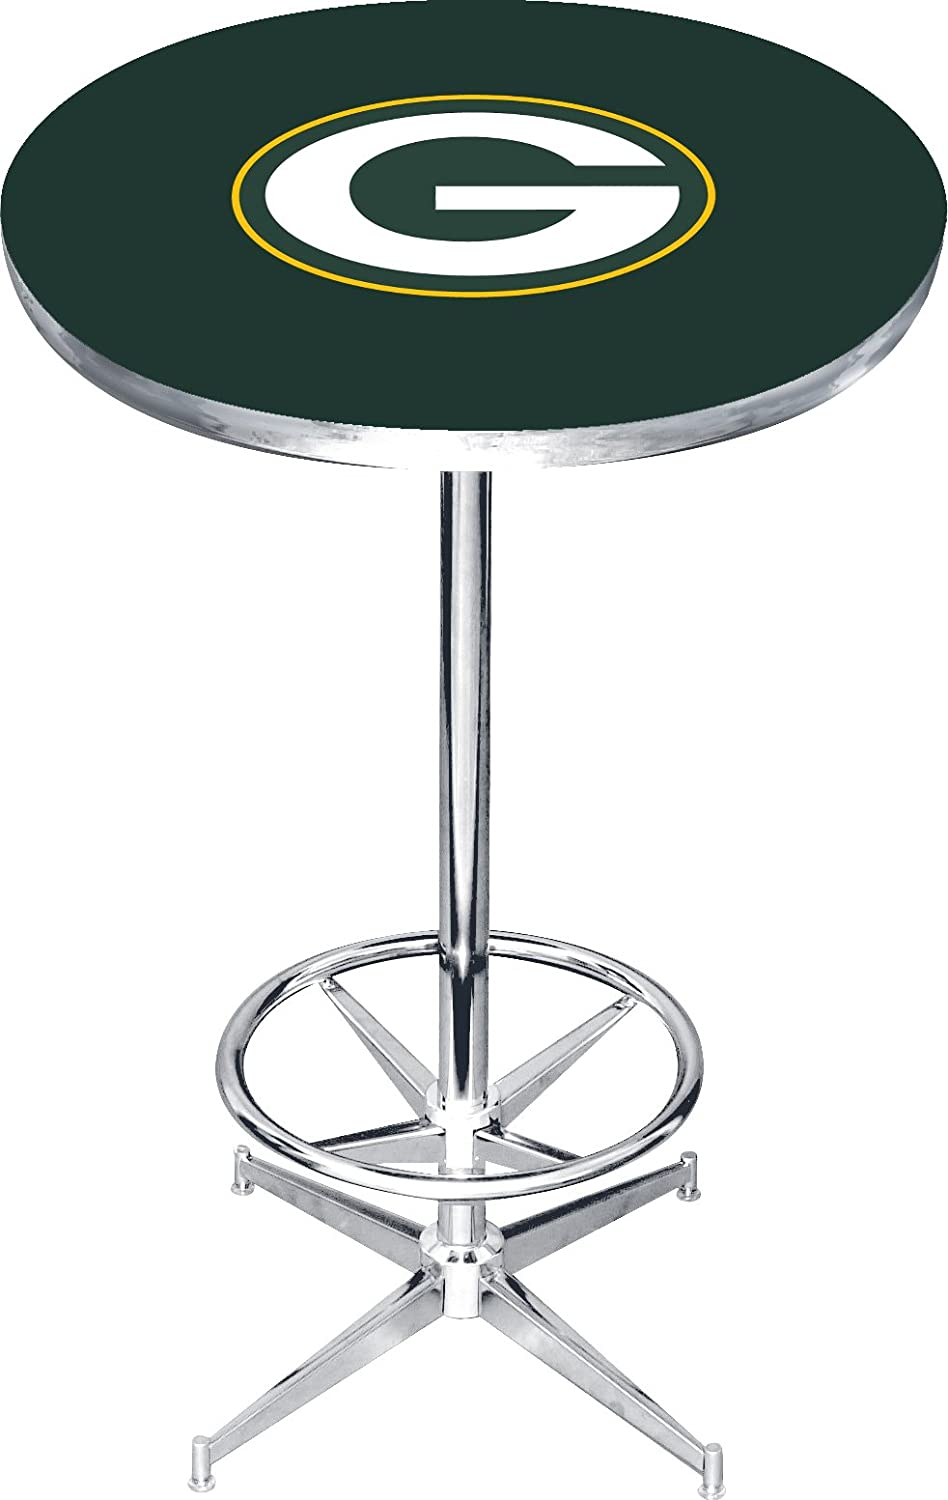 Round Pub-Style Table Imperial Officially Licensed NCAA Furniture